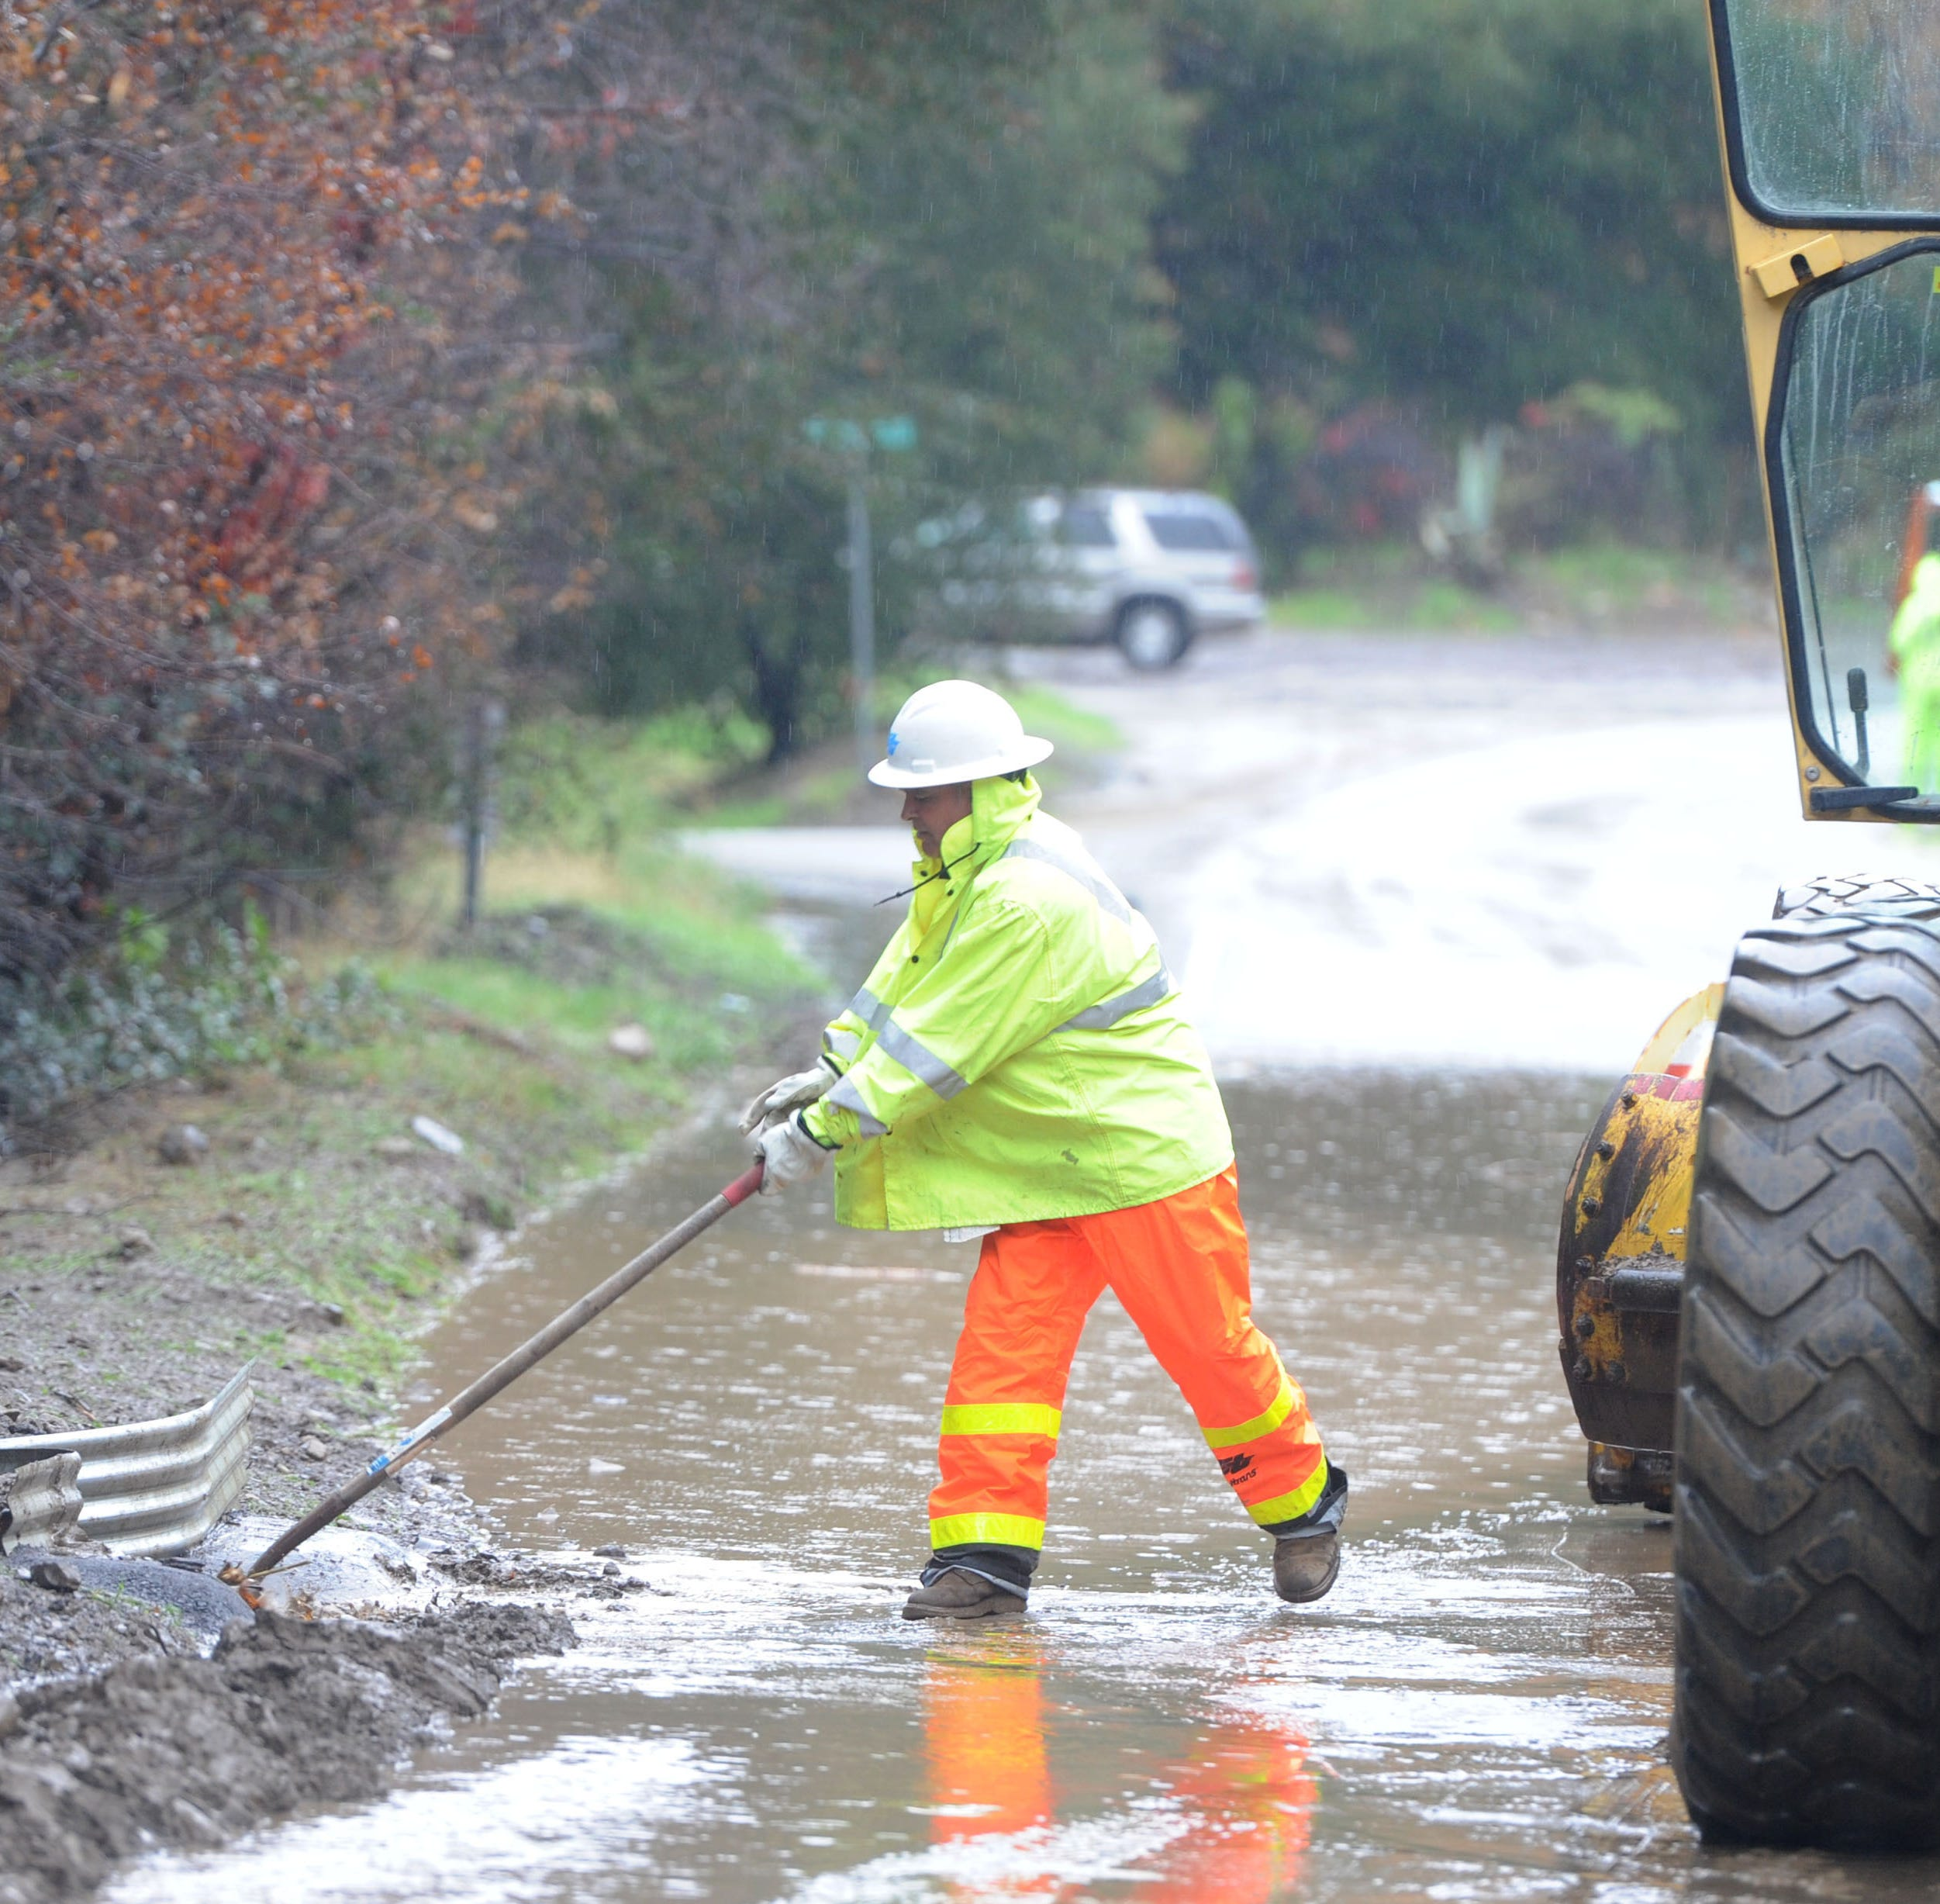 Ventura County survives latest storm that brought flooding, rock slides and evacuations